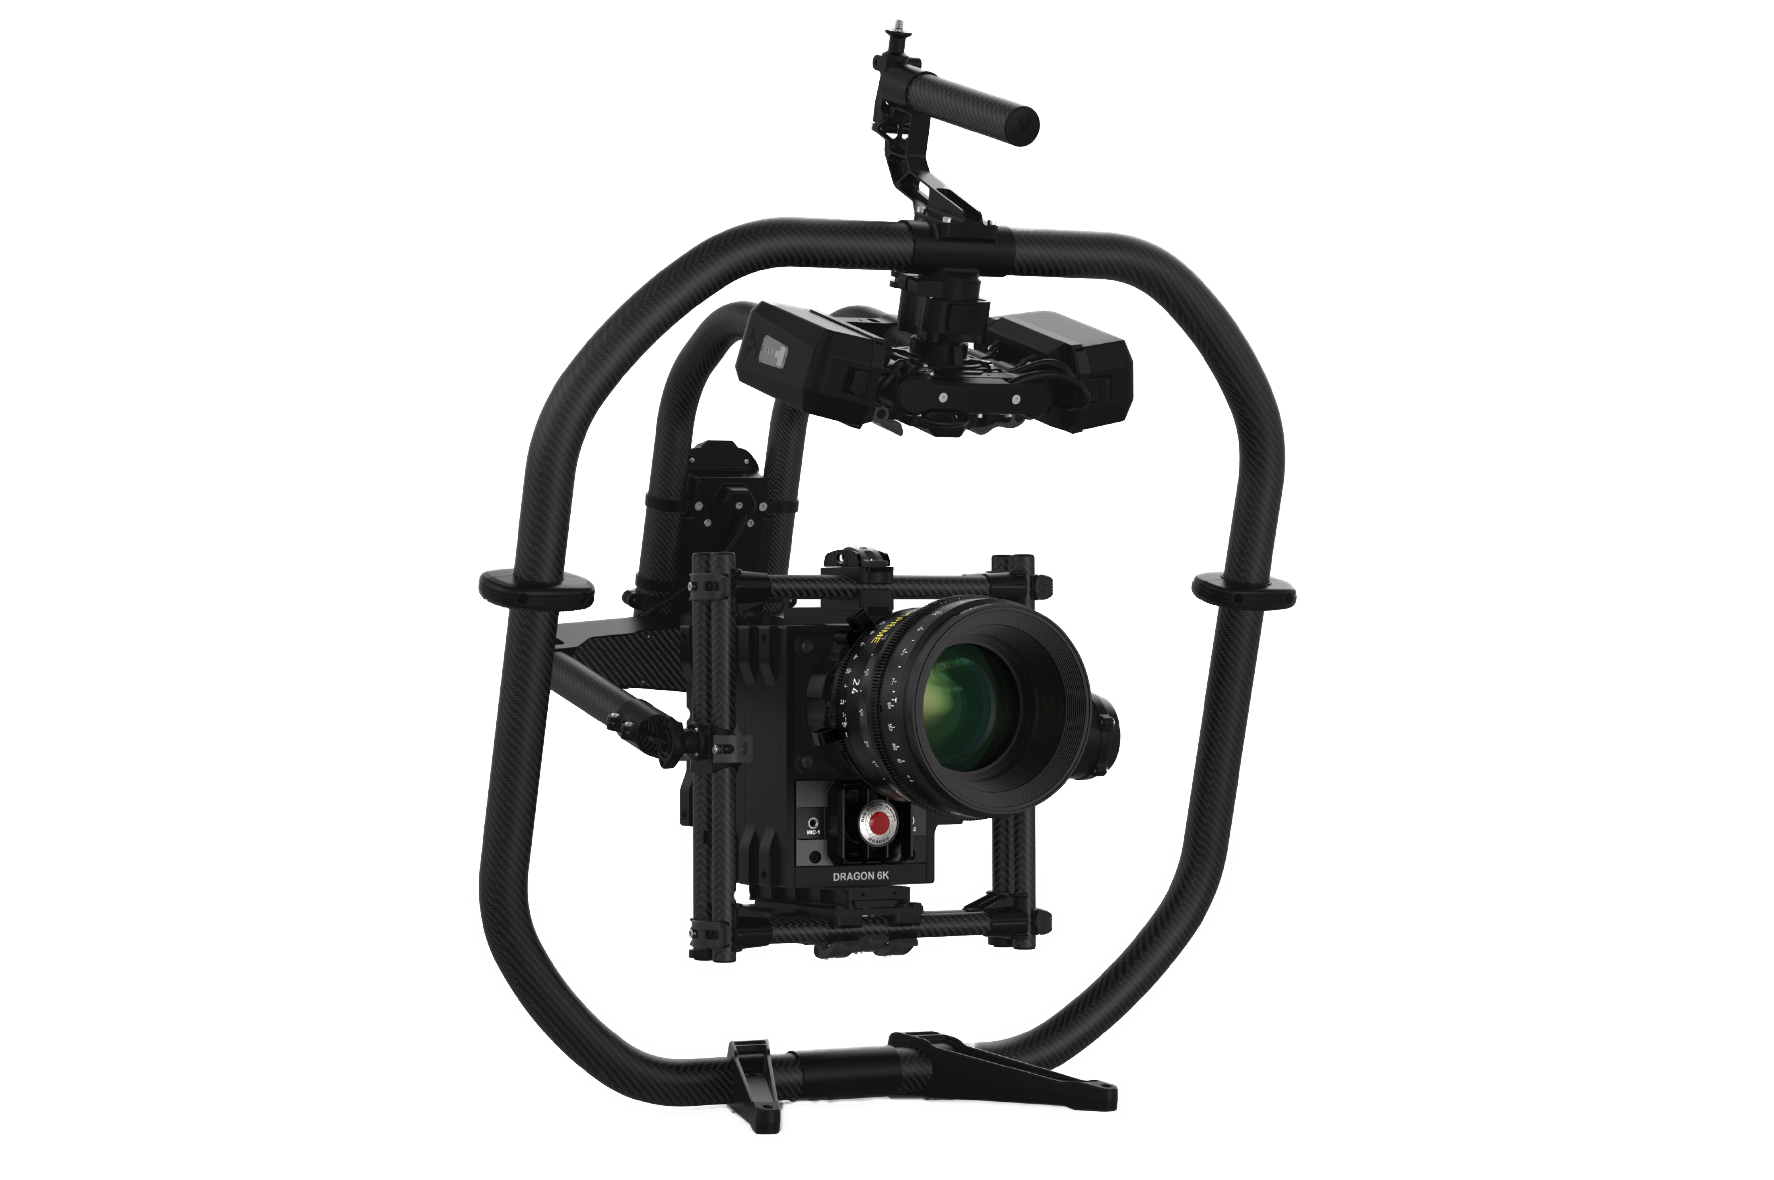 Freefly Movi Pro Stabilized Remote Gimbal, Drones, Aerial Cinematography, Monar Aero